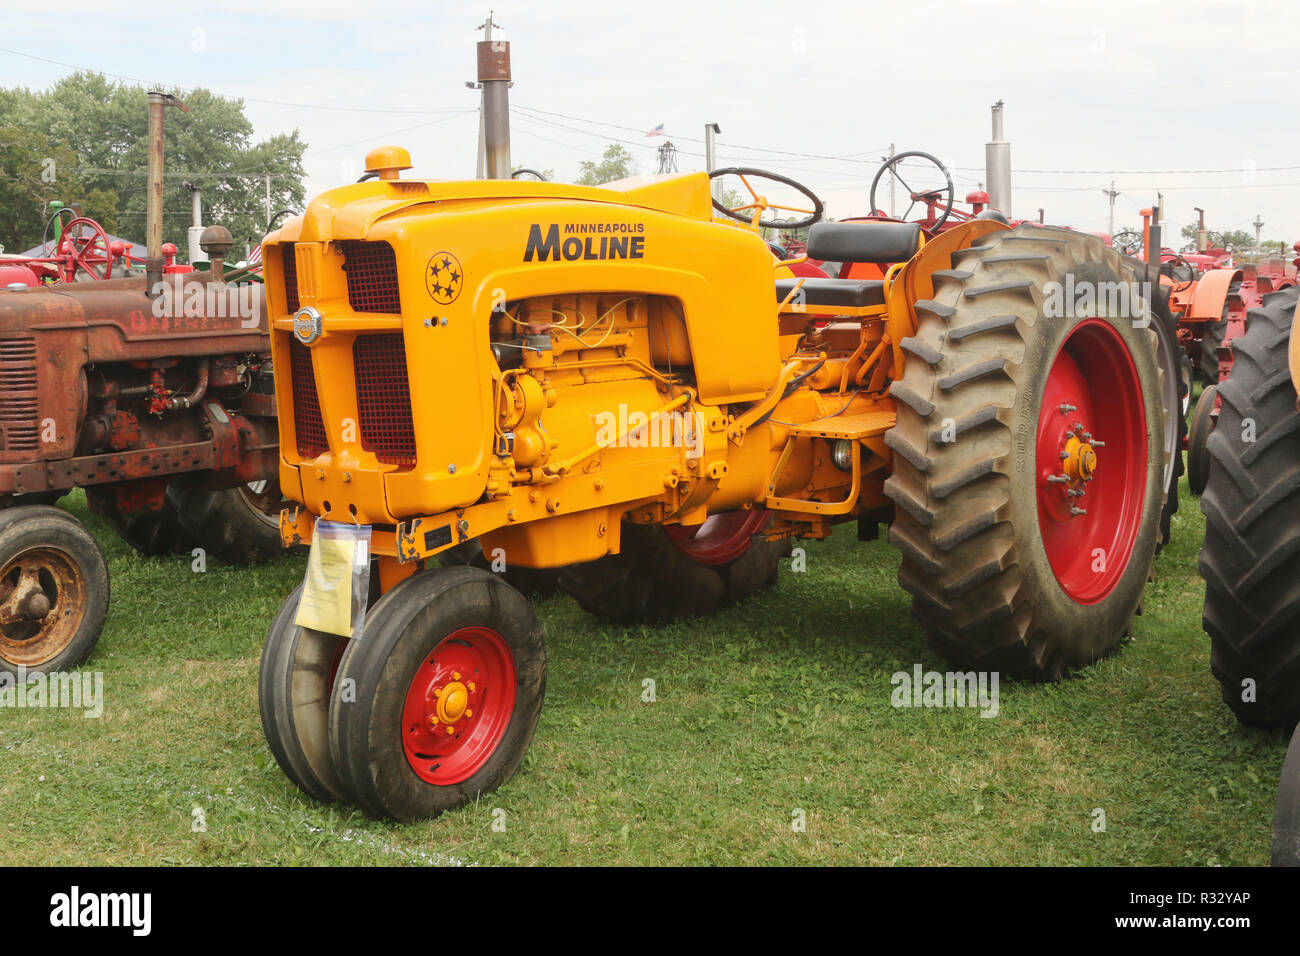 Tractor- 1957 Minneapolis Moline Model 5 Star. Canfield Fair. Mahoning County Fair. Canfield, Youngstown, Ohio, USA. - Stock Image